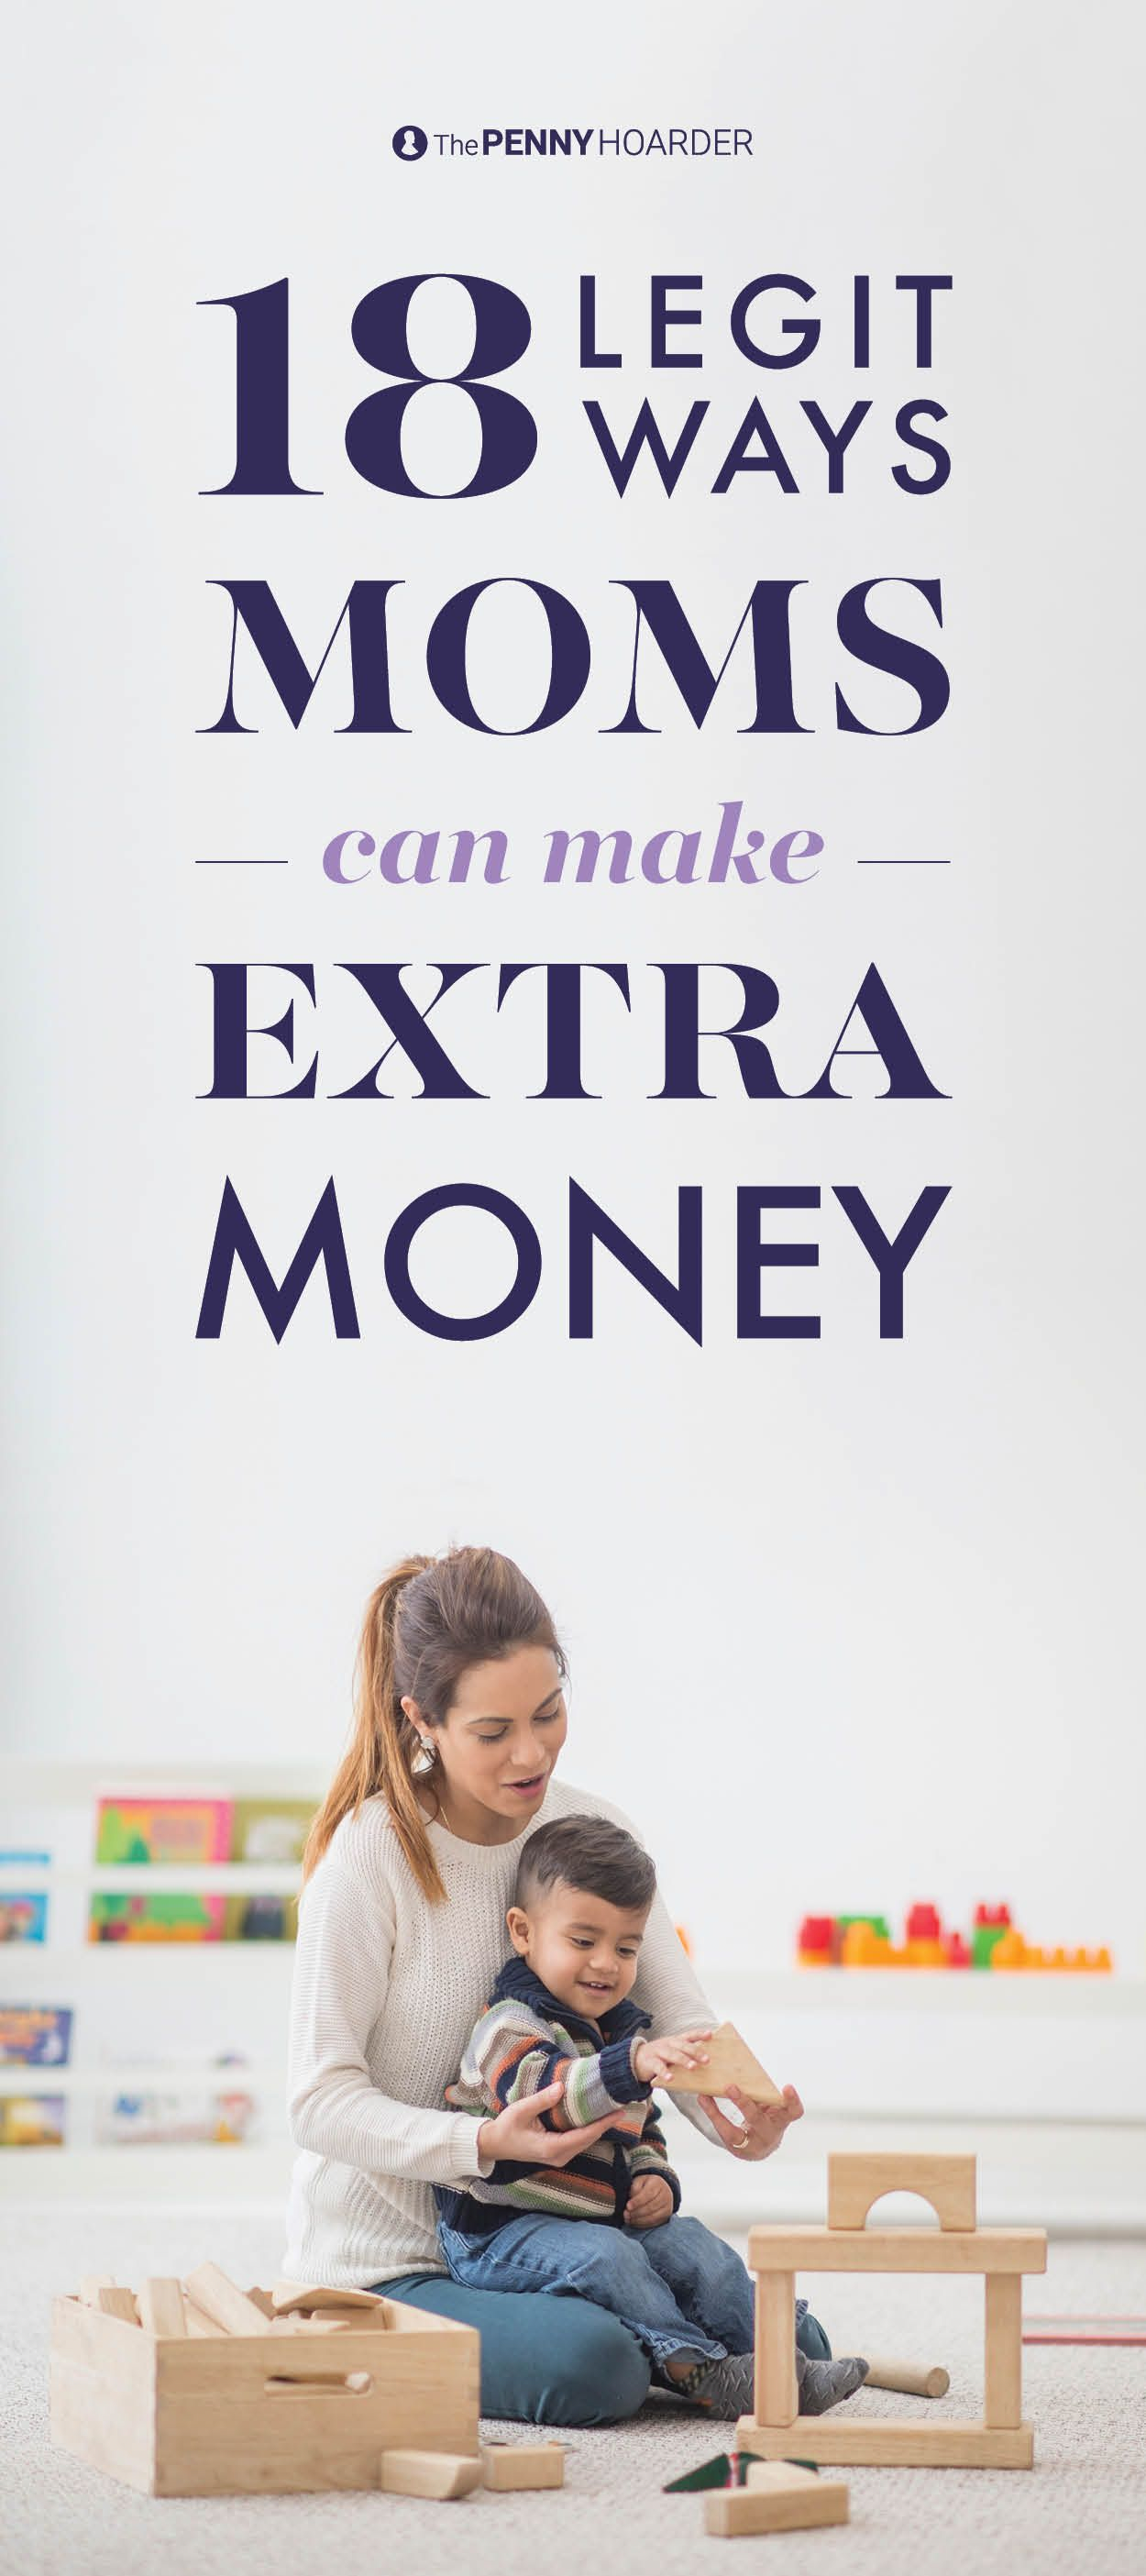 Pin by Laura Bybee on Home Based Income Ideas | Pinterest ...